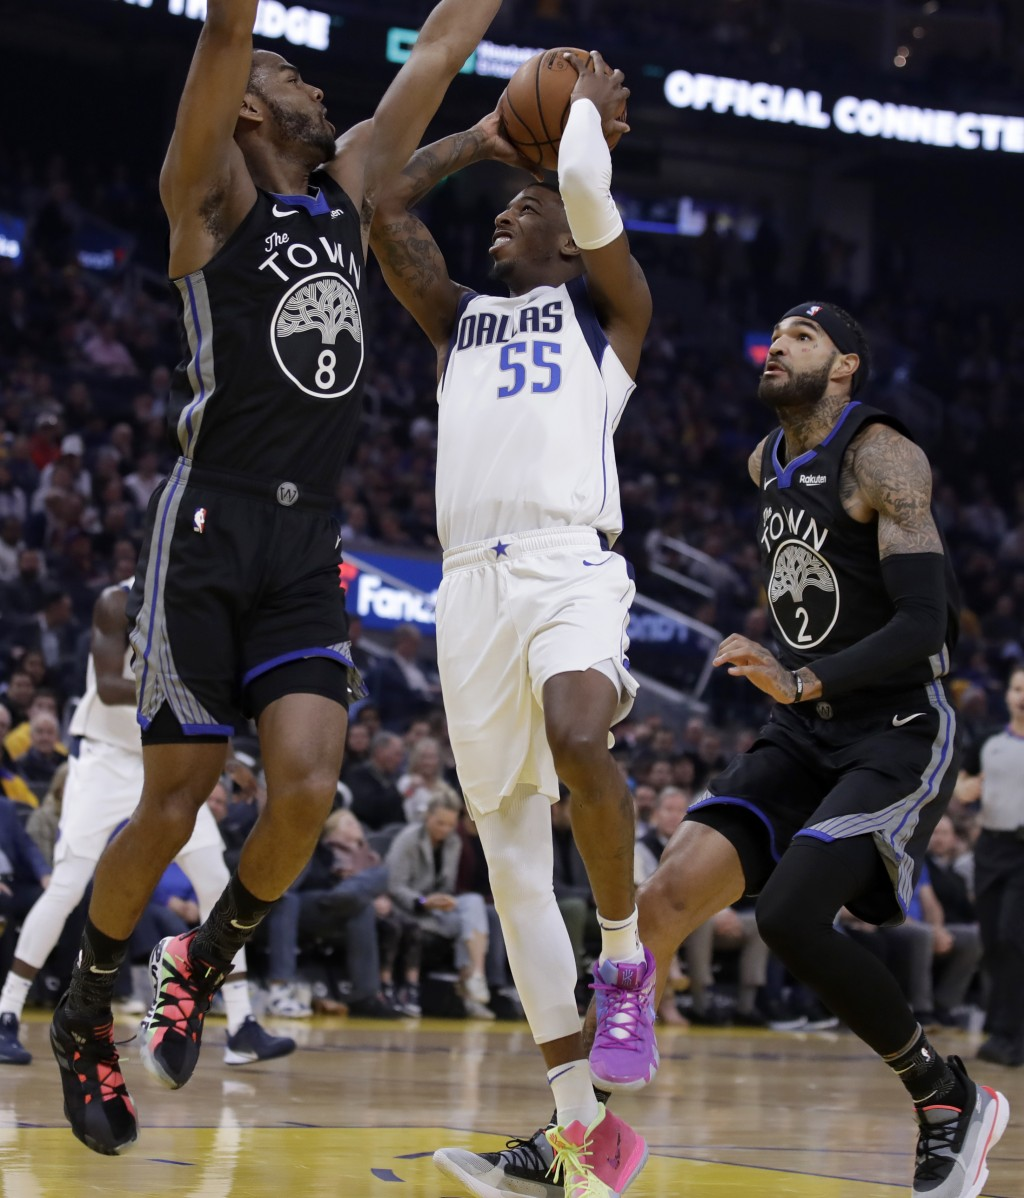 Dallas Mavericks' Delon Wright, center, shoots between Golden State Warriors' Alec Burks, left, and Willie Cauley-Stein (2) in the first half of an NB...